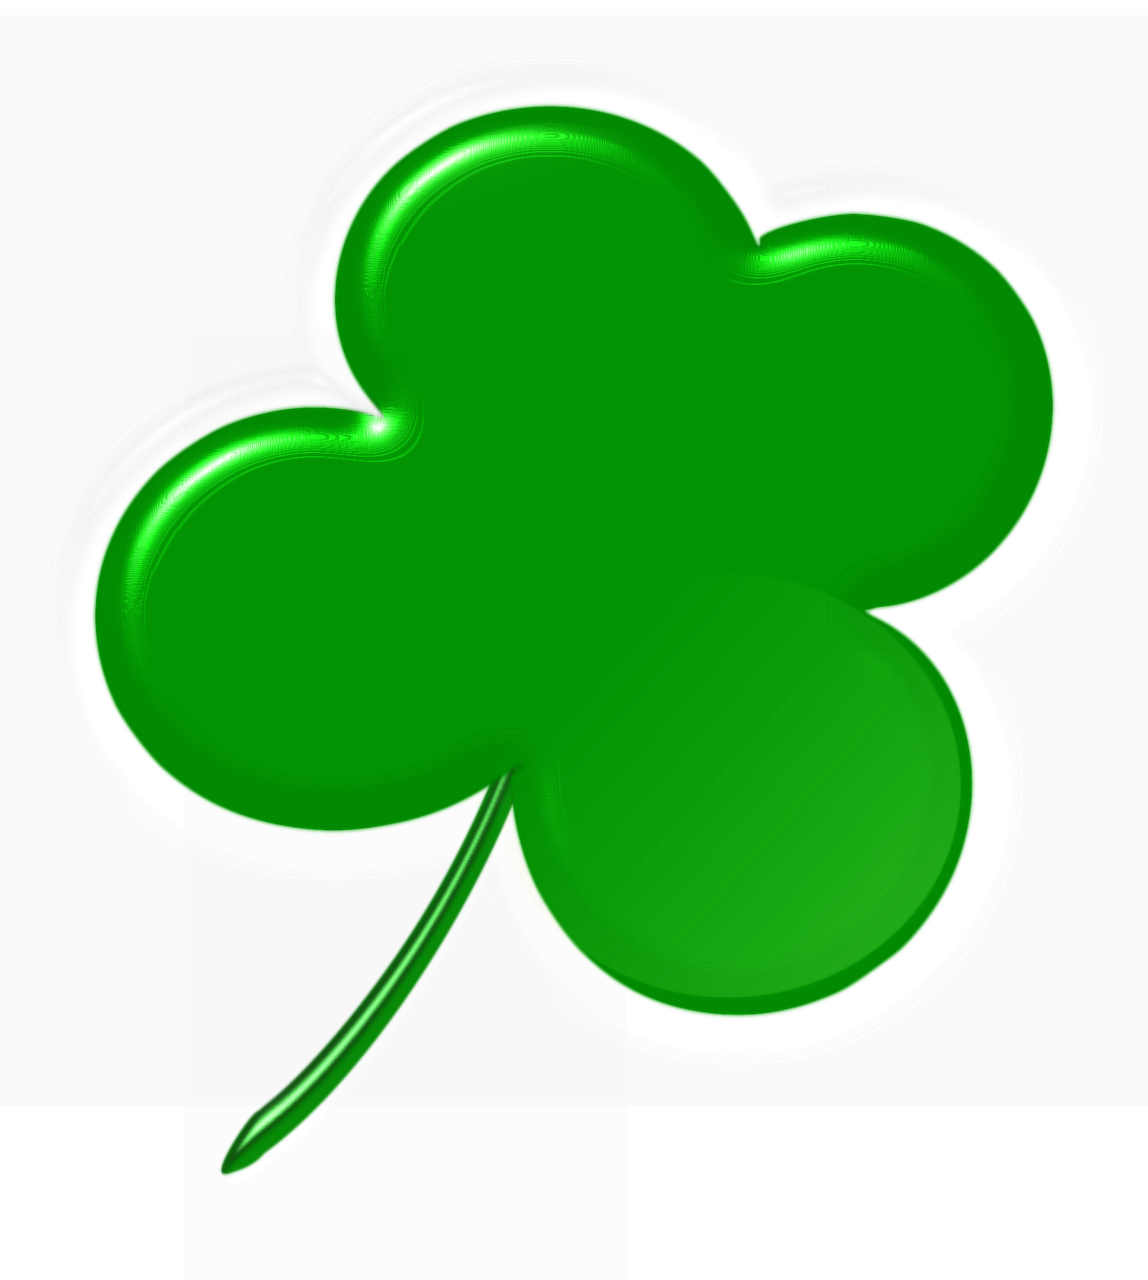 Clover Four Leaf Clover Shamrock Luck Irish Free Image From